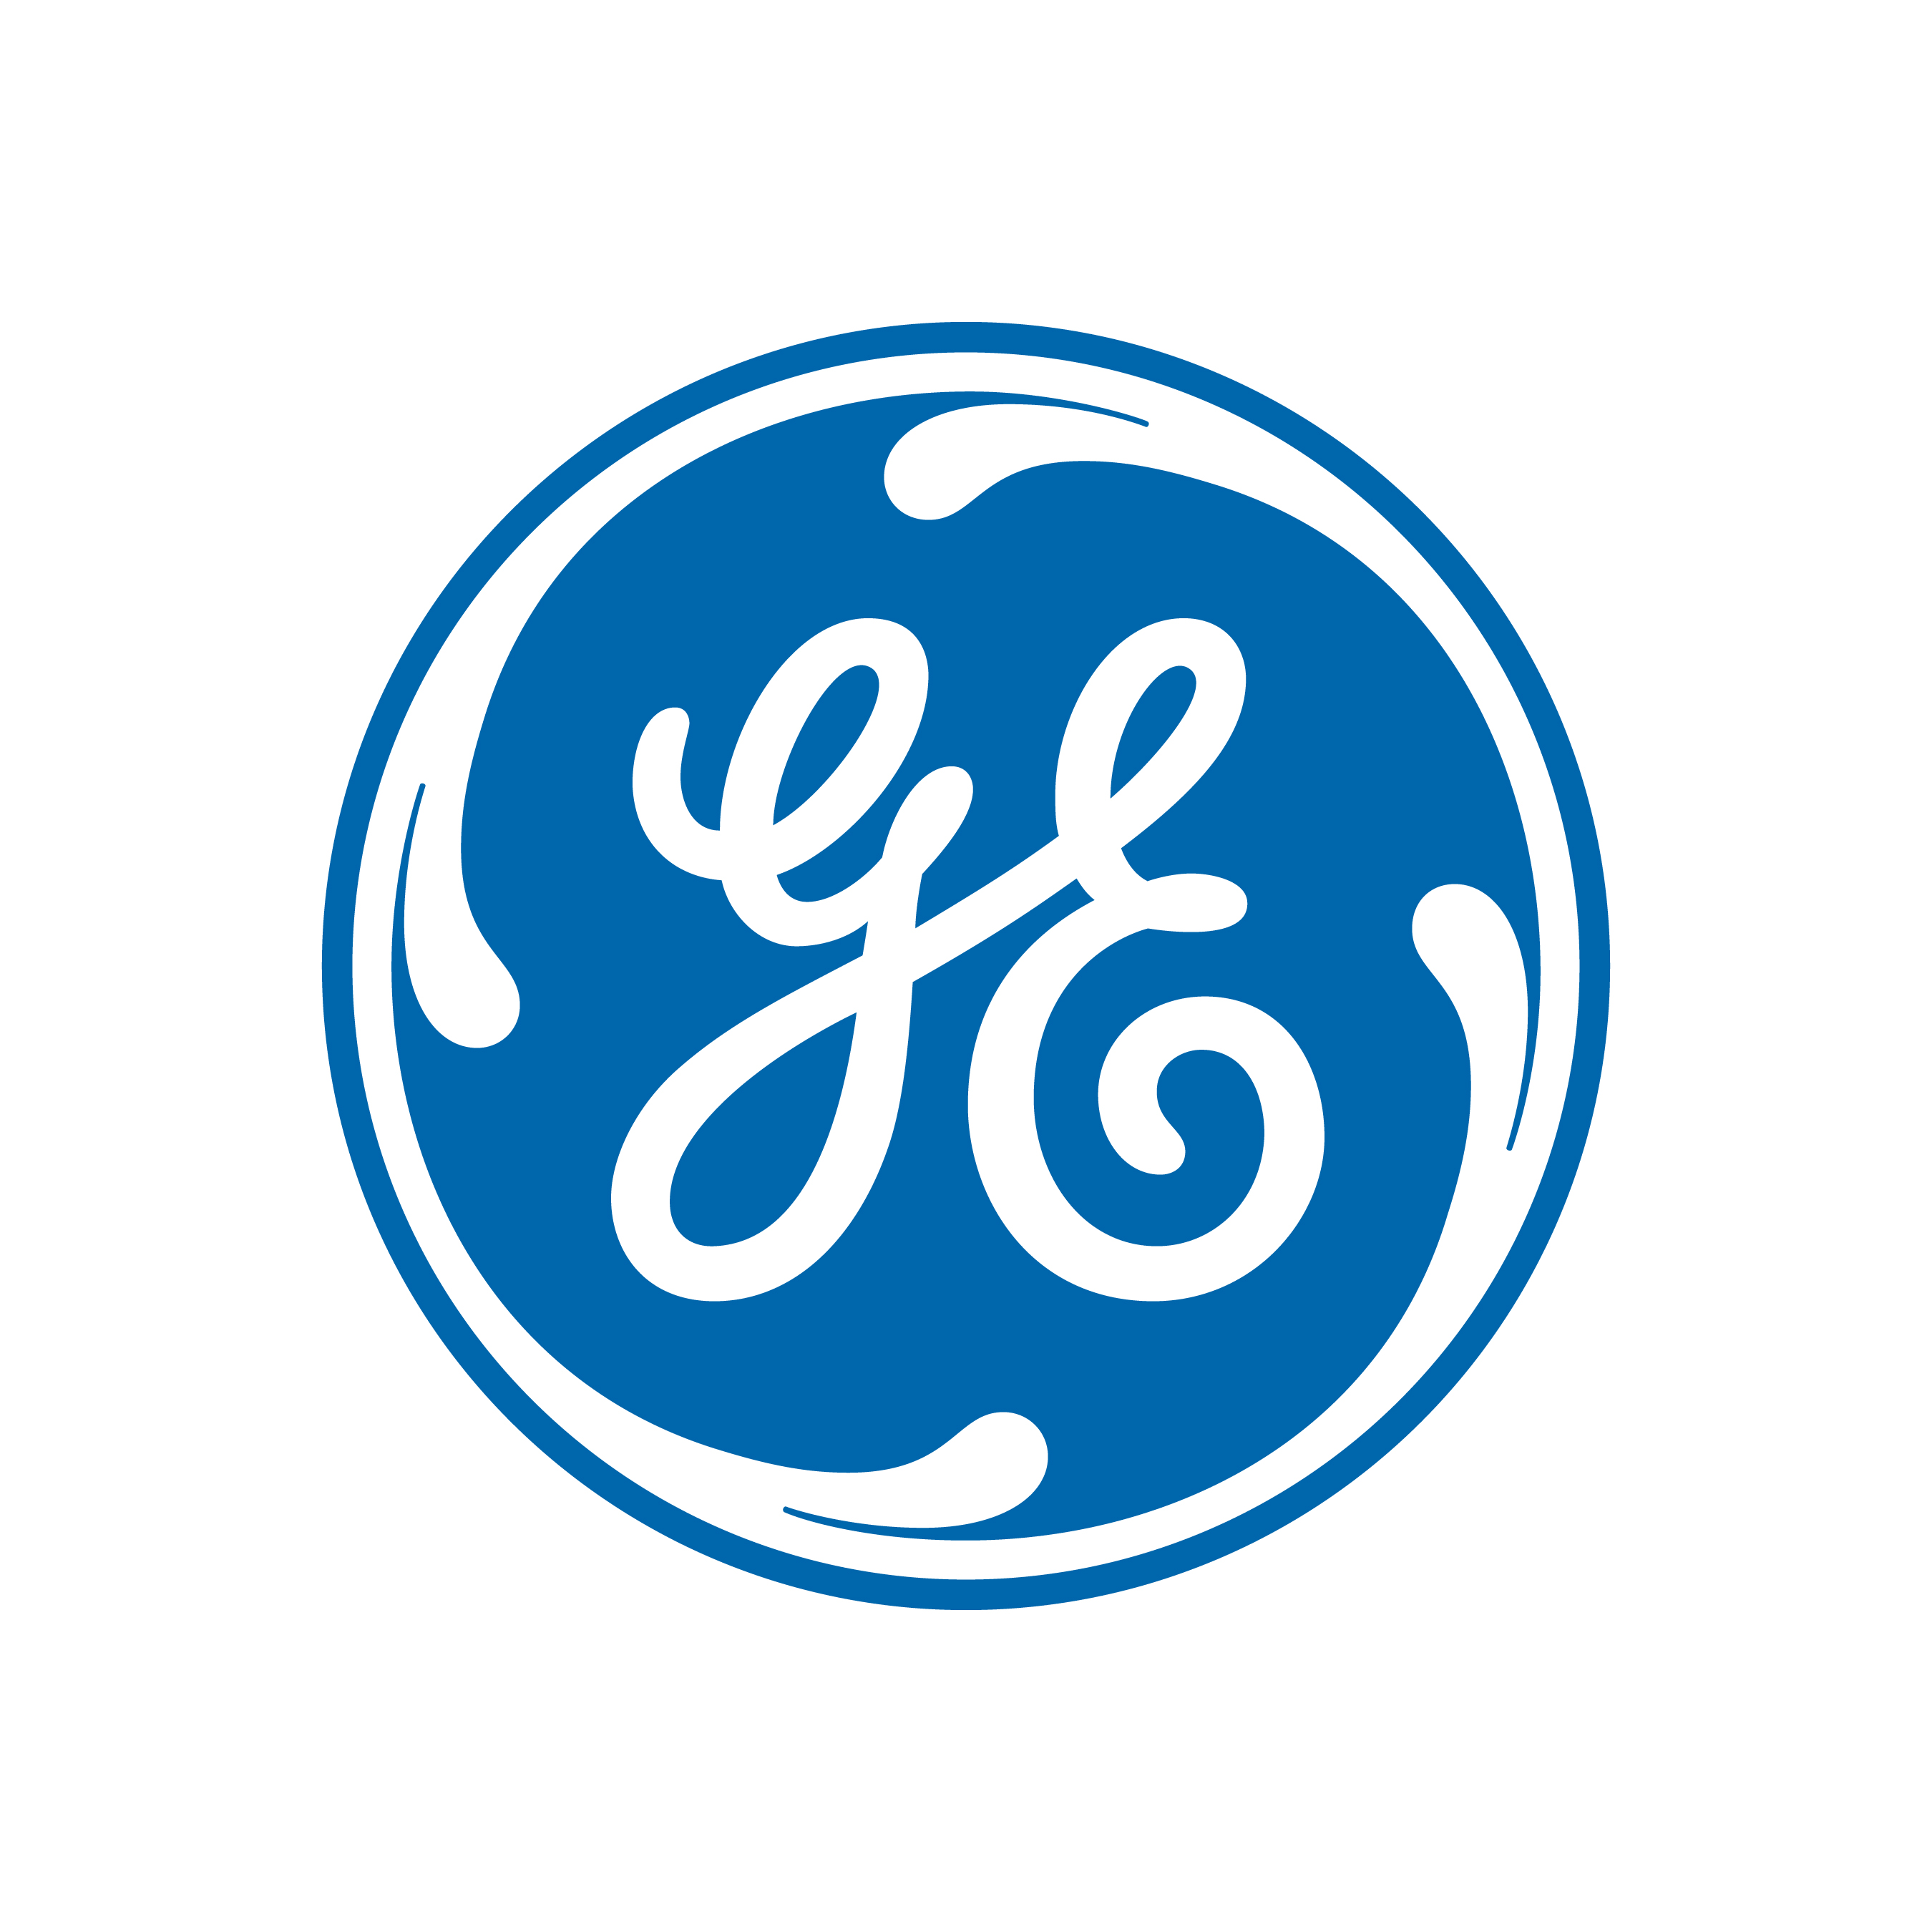 ge monogram primary blue 300